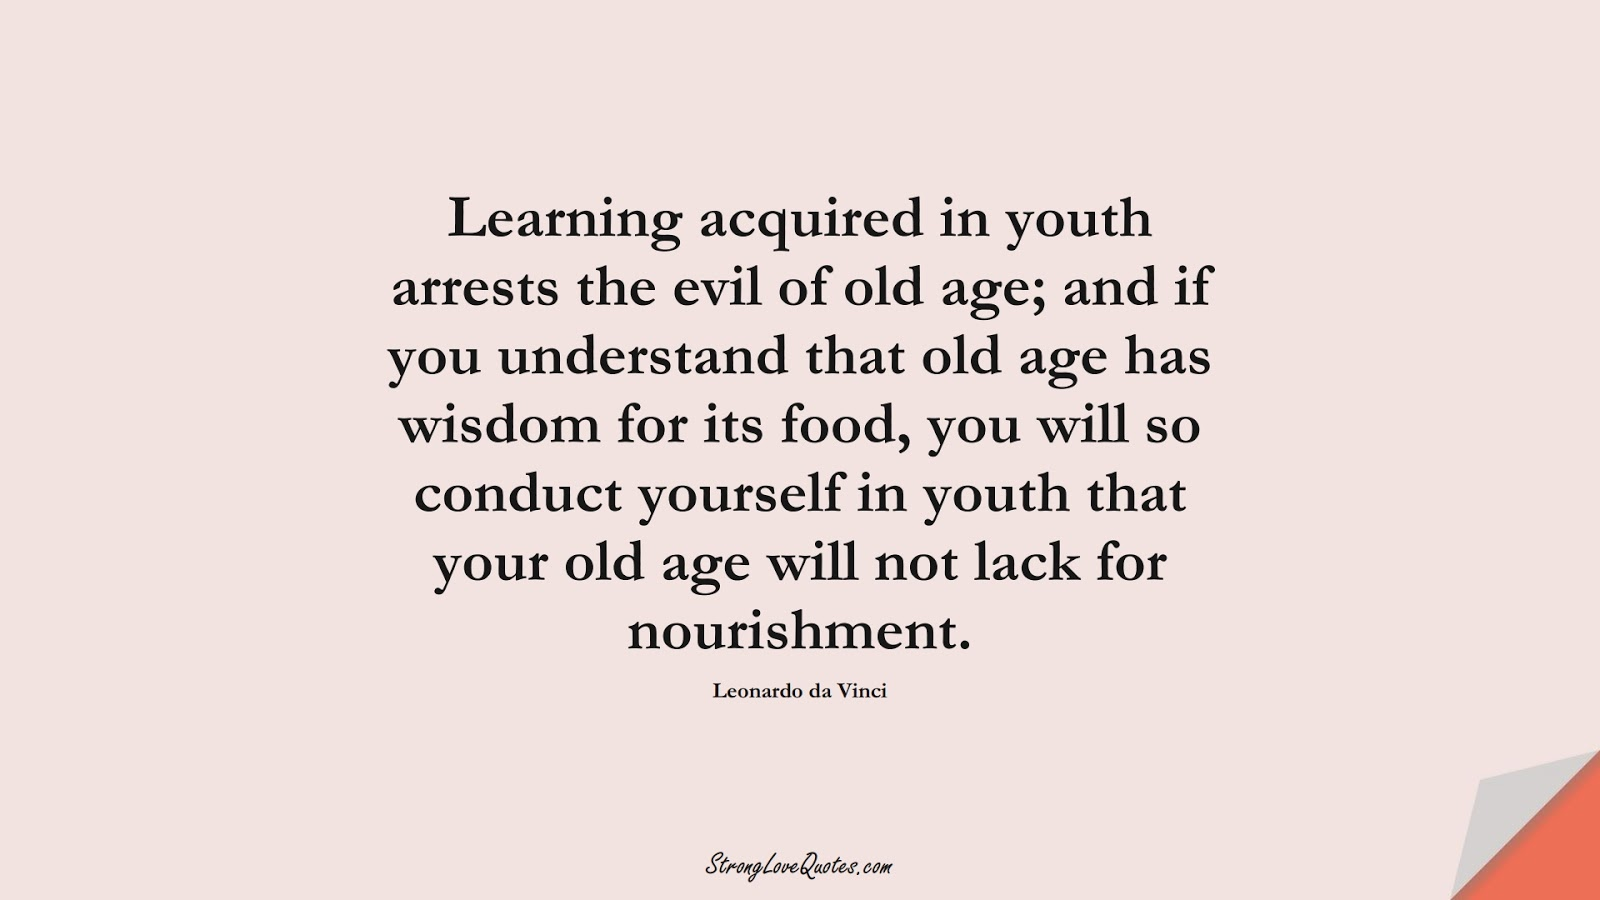 Learning acquired in youth arrests the evil of old age; and if you understand that old age has wisdom for its food, you will so conduct yourself in youth that your old age will not lack for nourishment. (Leonardo da Vinci);  #EducationQuotes